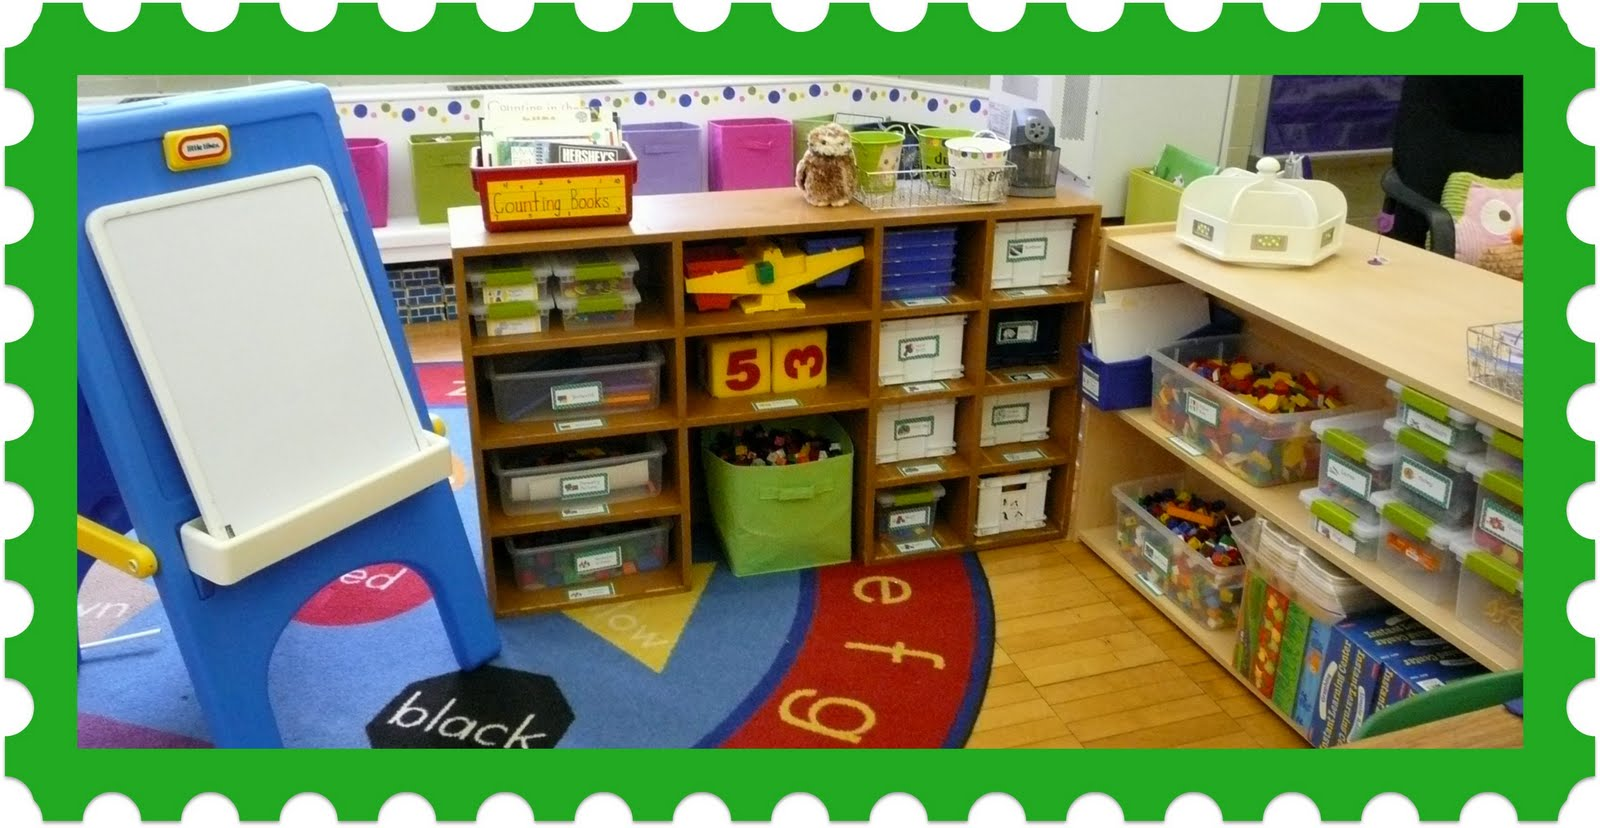 The Very Busy Kindergarten: Guided Math Chapter 5